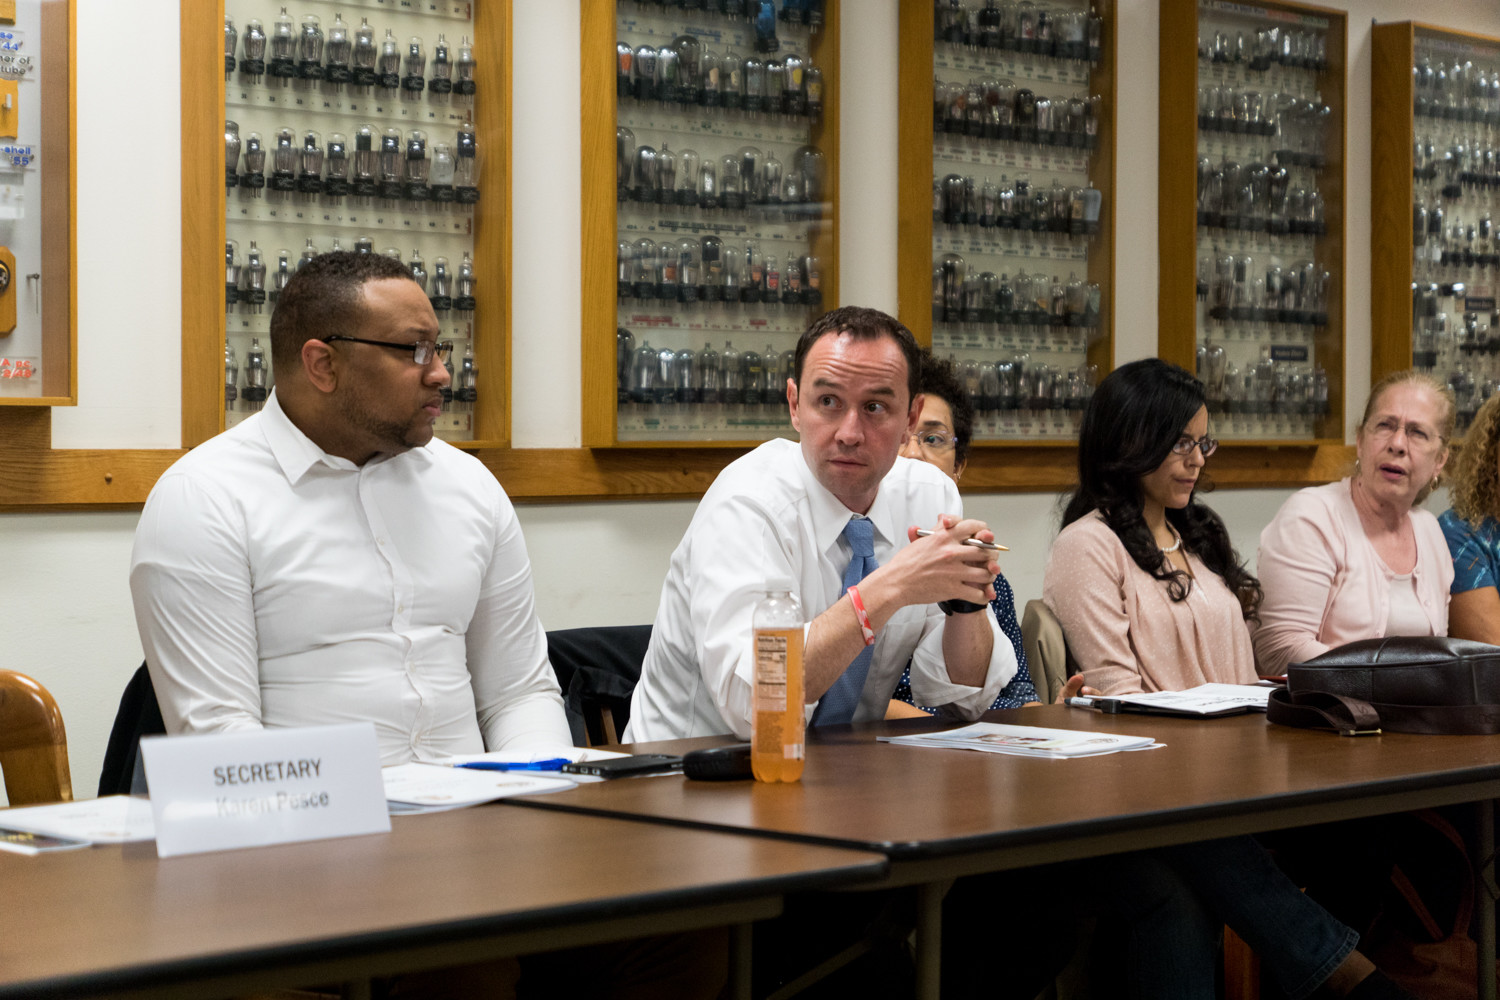 Dan Padernacht, center, attends a Community Board 8 meeting last September. The search for a new district manager might be expanding, giving new potential candidates a chance to apply.